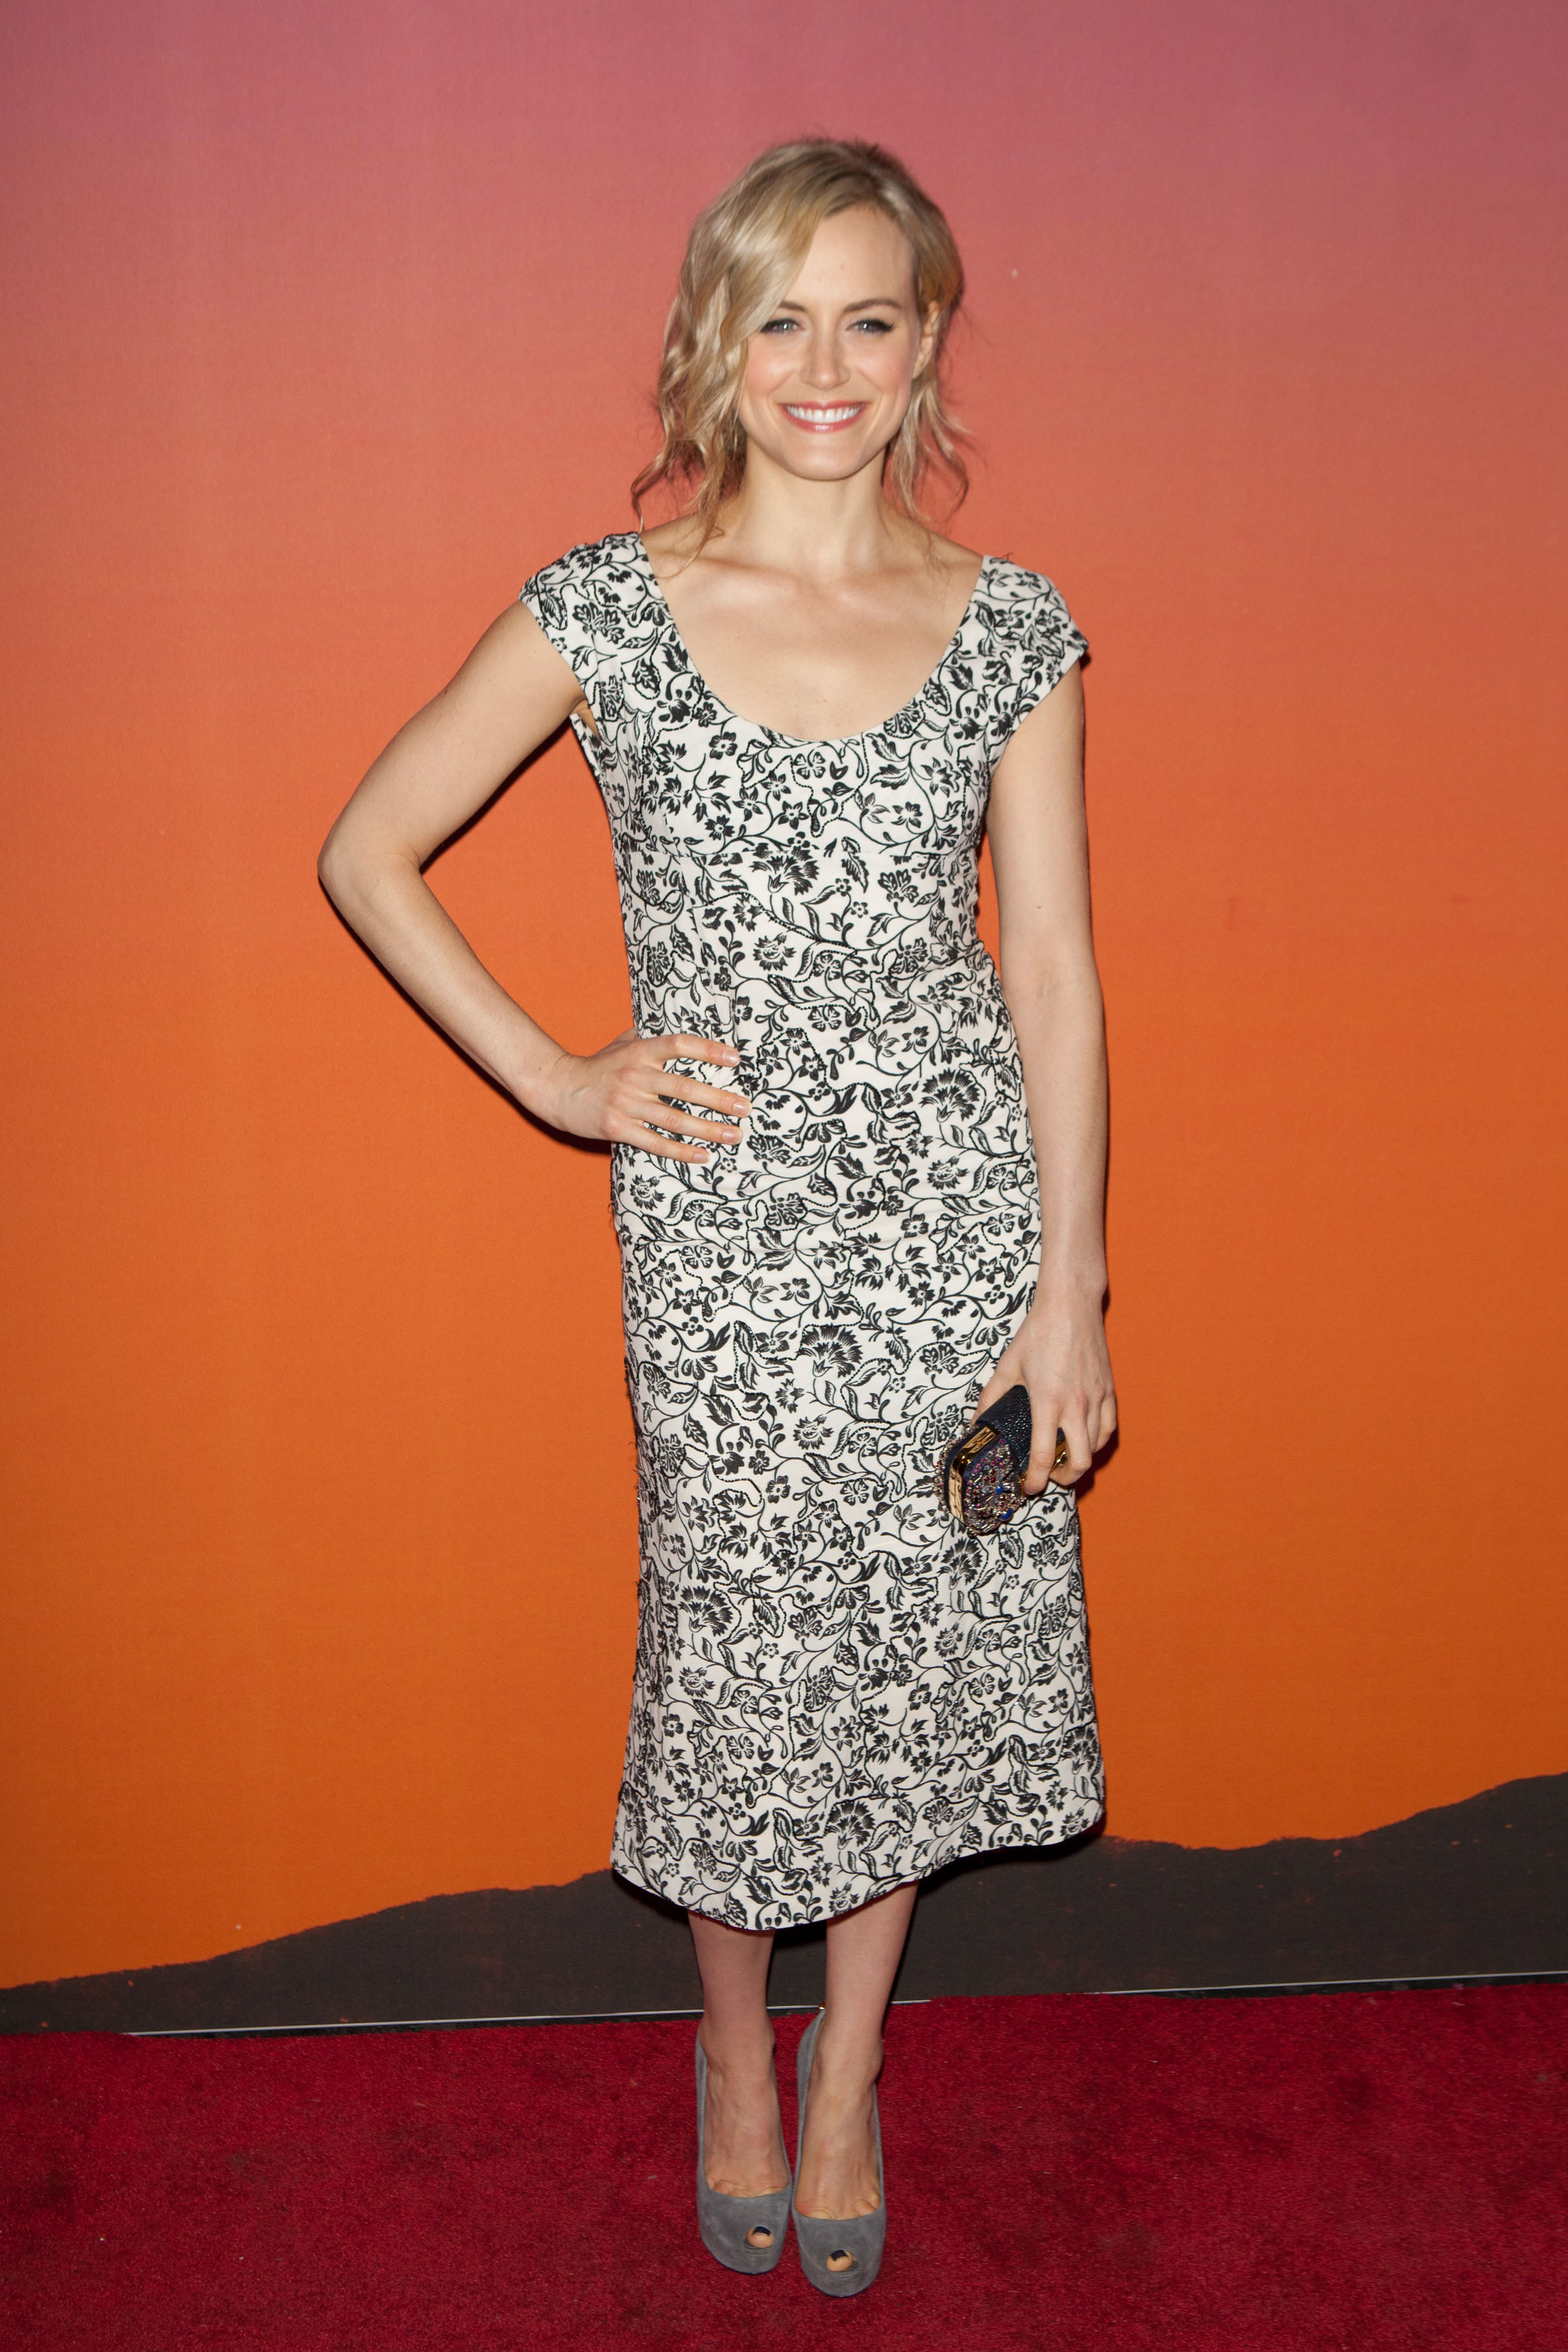 Taylor Schilling Whitney Museum Of American Art Gala Nyc Oct 23 2013